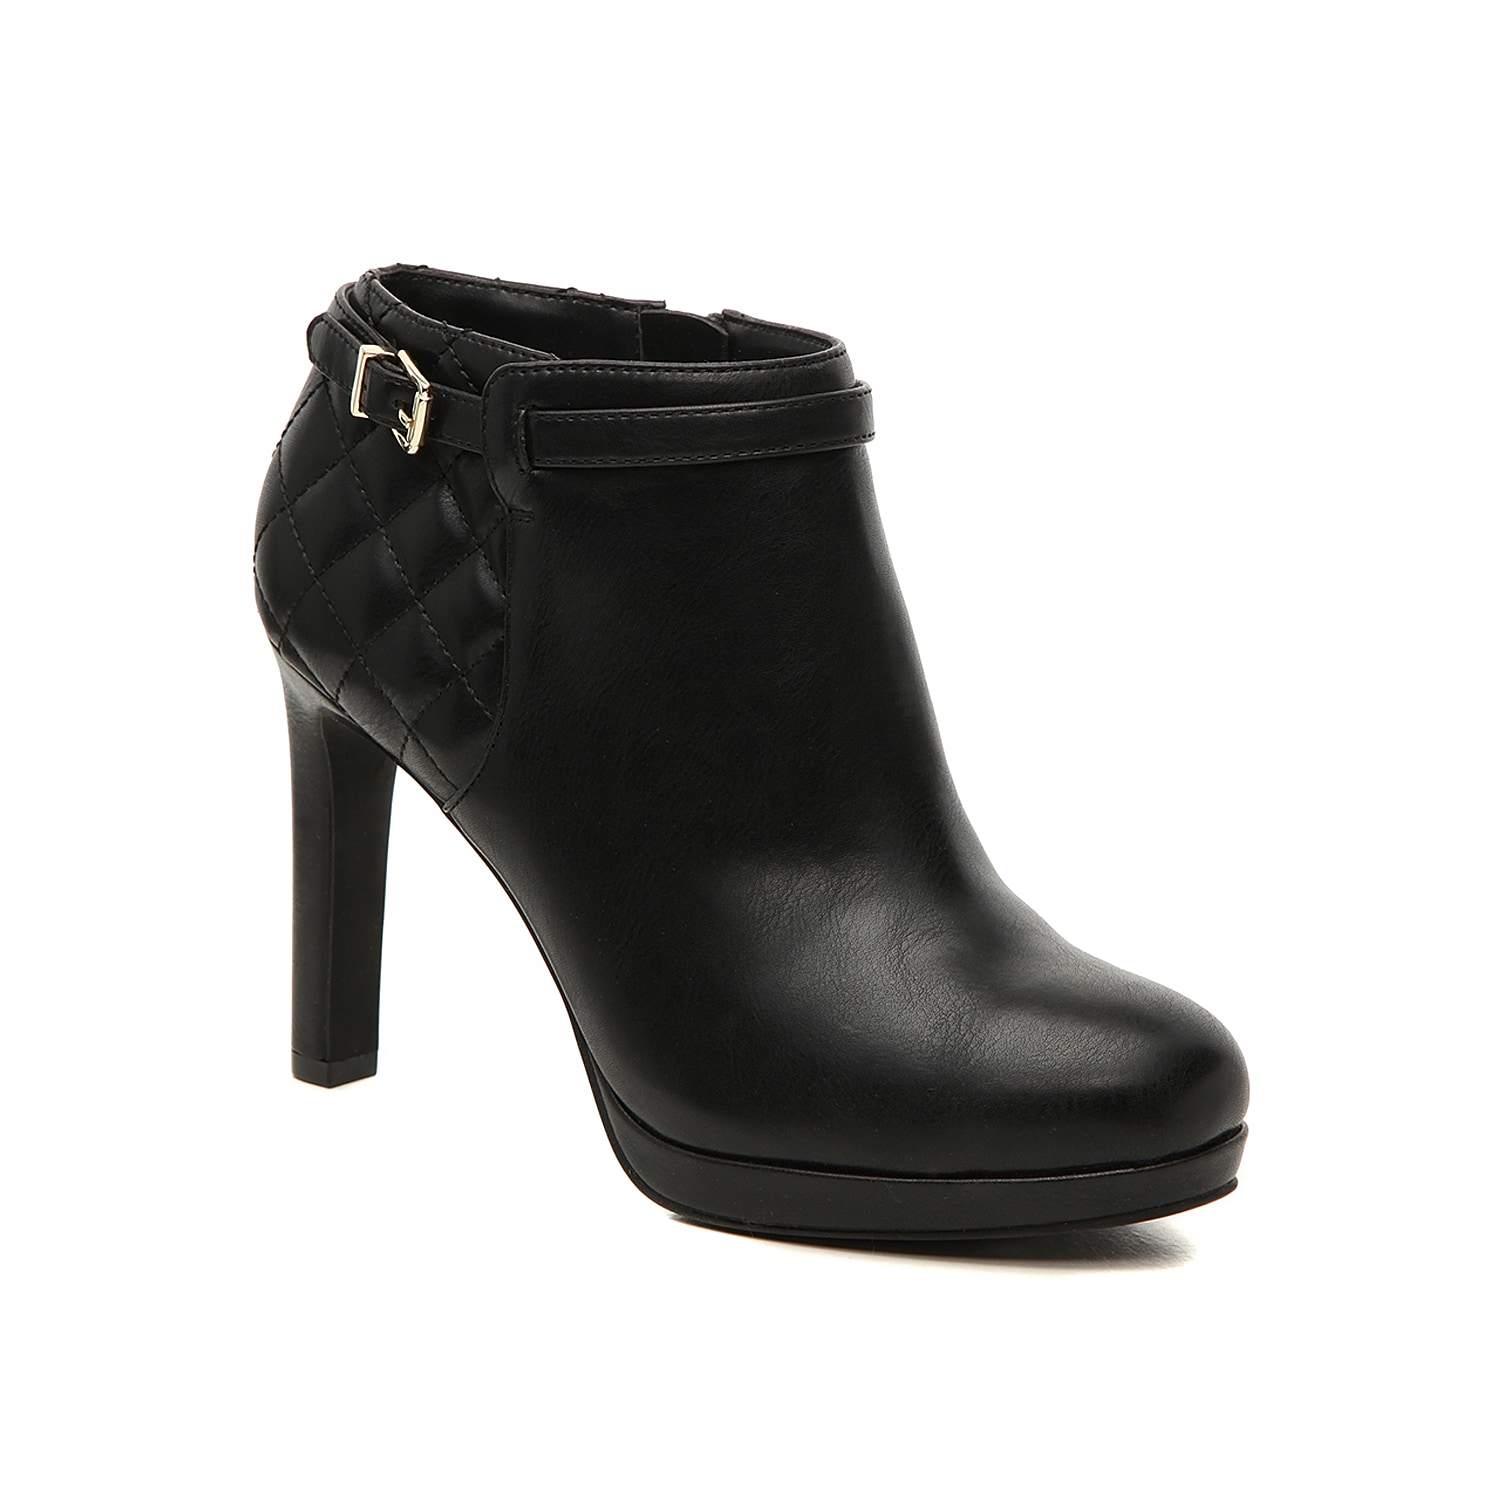 The Corymbos platform bootie from Kelly & Katie is the dressy look you\\\'ve been striving for. The supportive platform and slender buckle accent will go great with a midi dress or dark jeans!